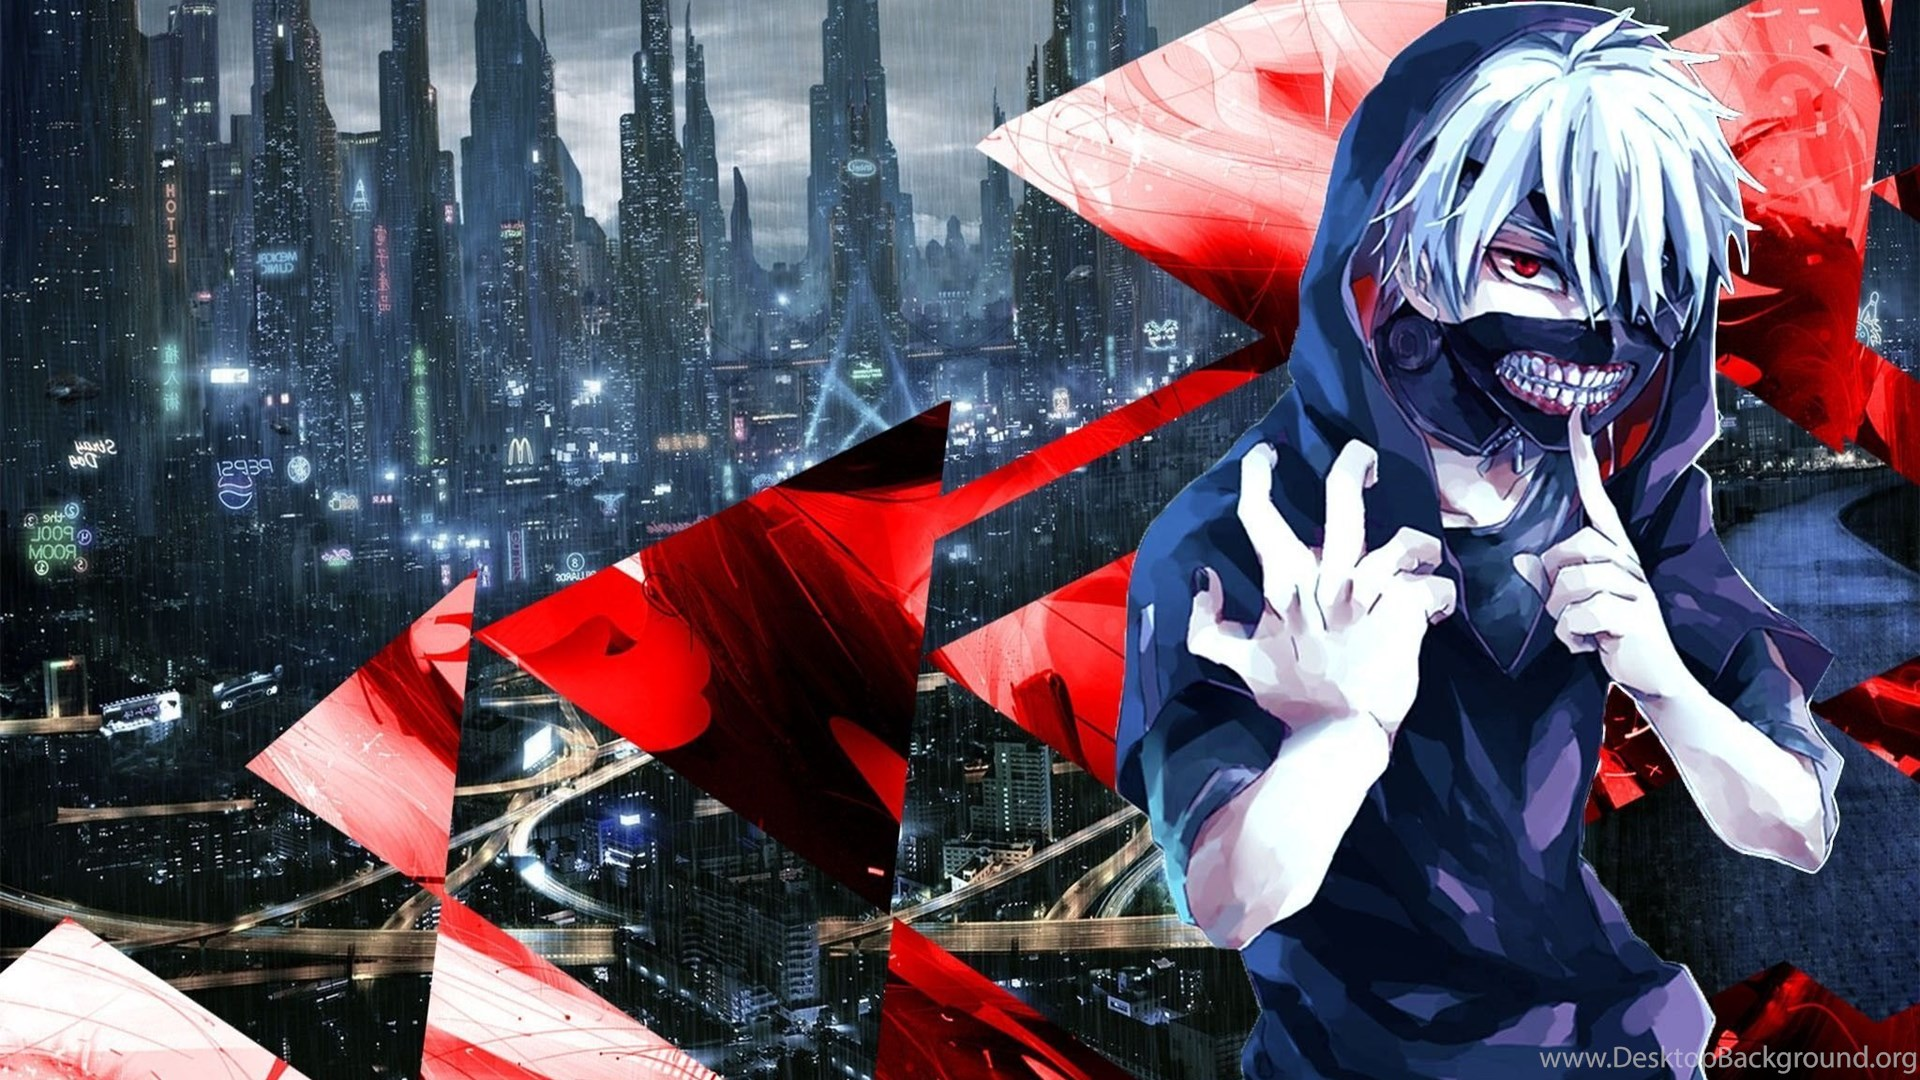 Tokyo Ghoul Kaneki Ken Blue Red Abstract Anime Wallpapers Hd Desktop Background